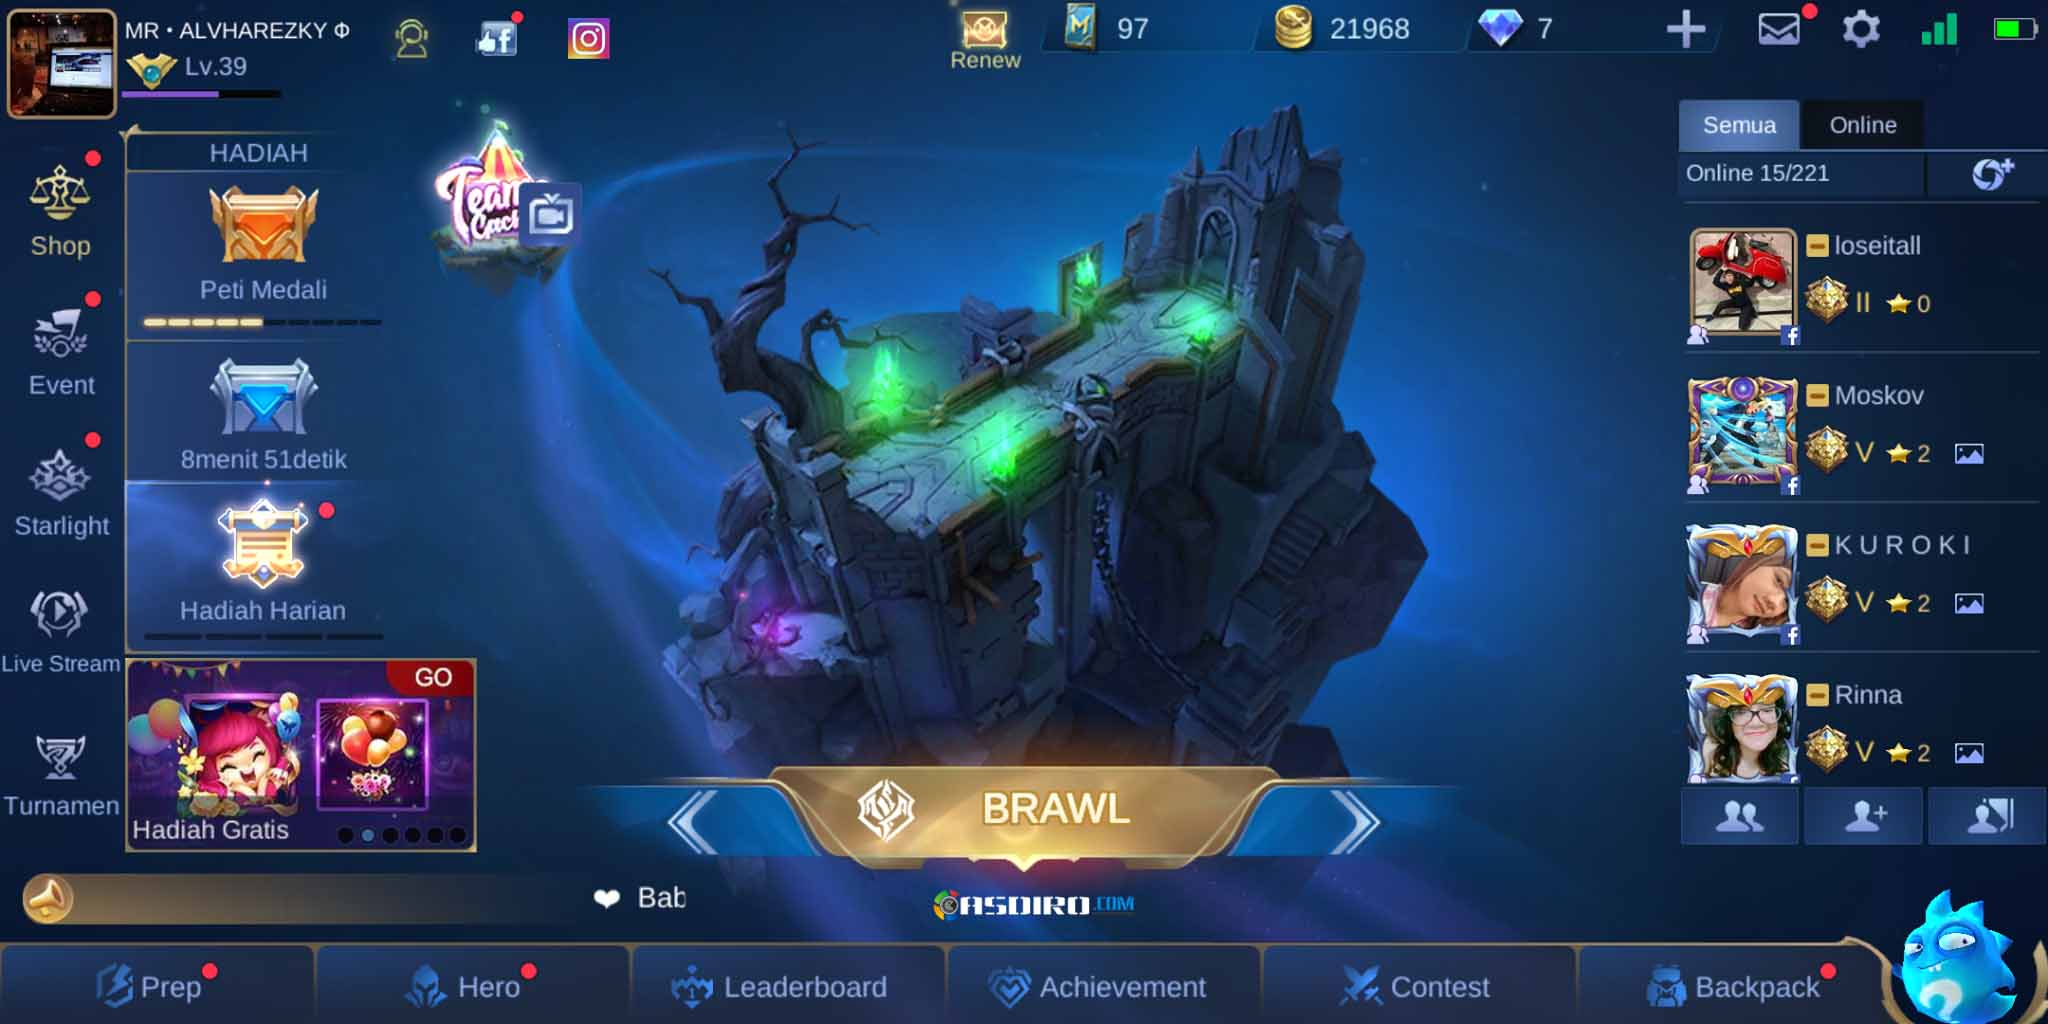 Mode Brawl di Mobile Legends Apk